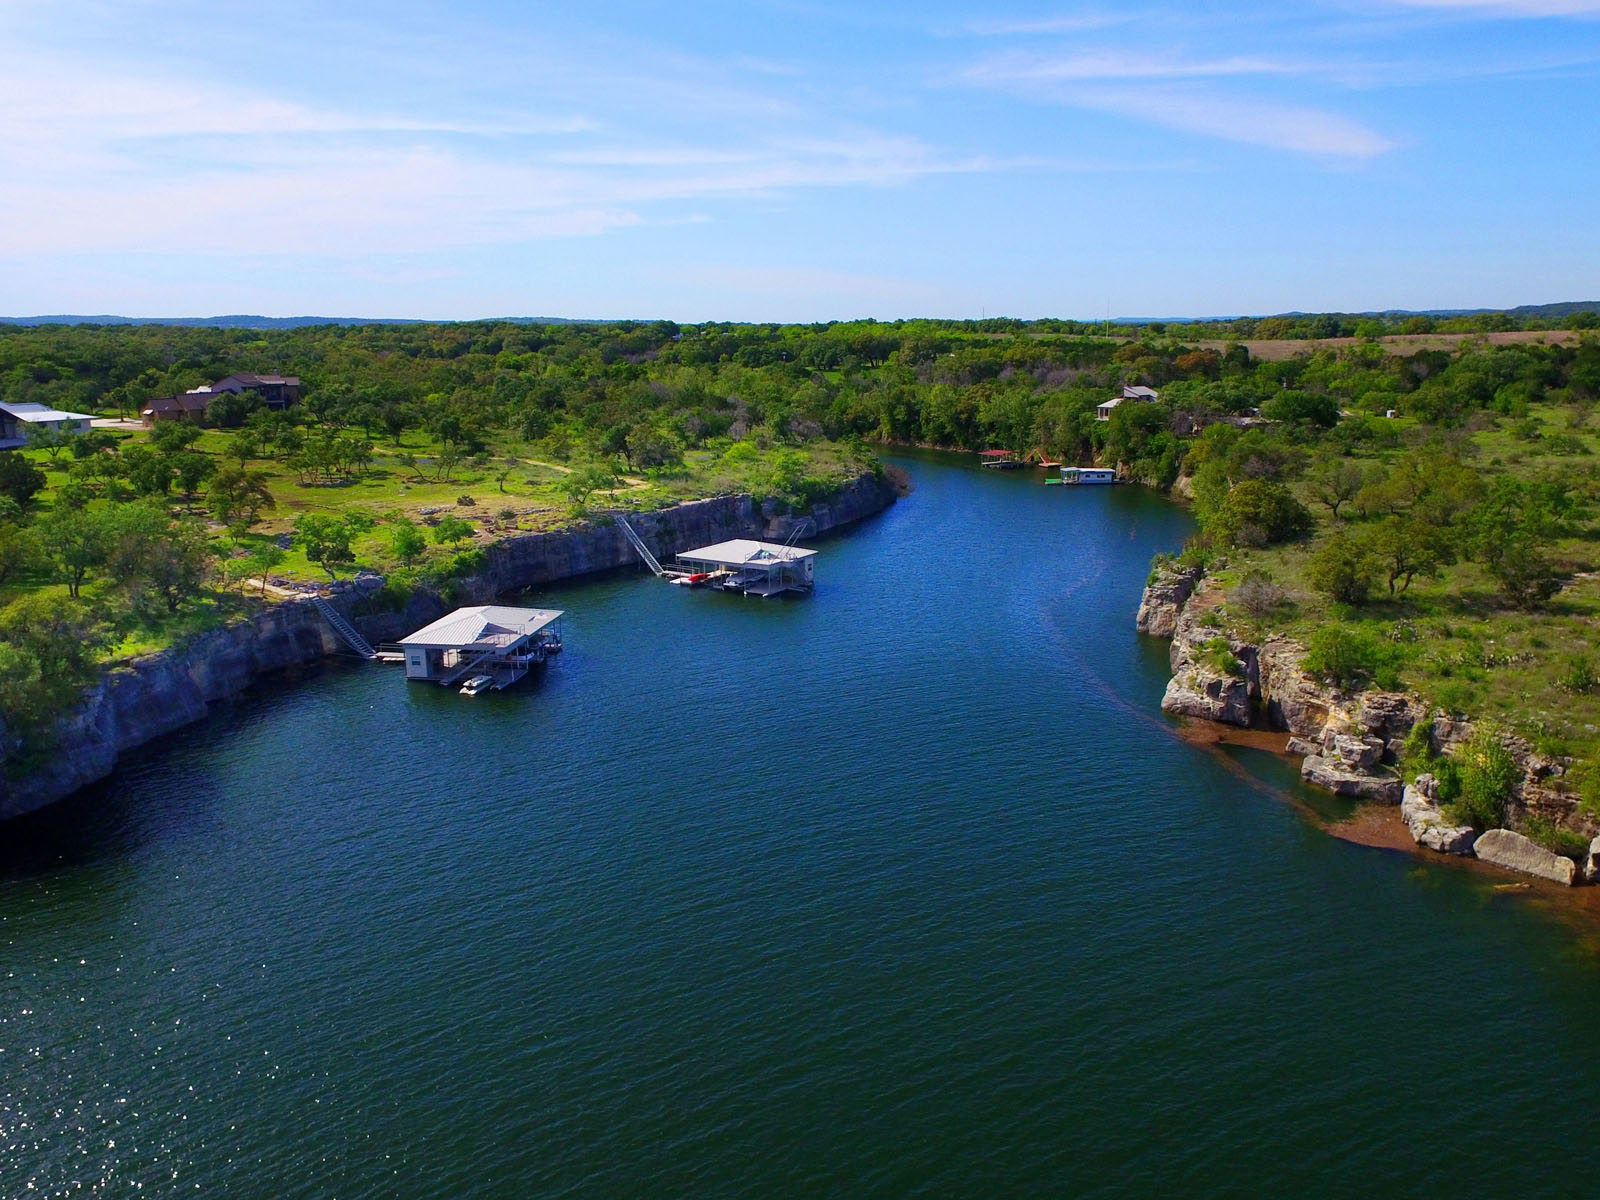 Land for Sale at 22800 Mary Nell Ln, Spicewood Spicewood, Texas 78669 United States